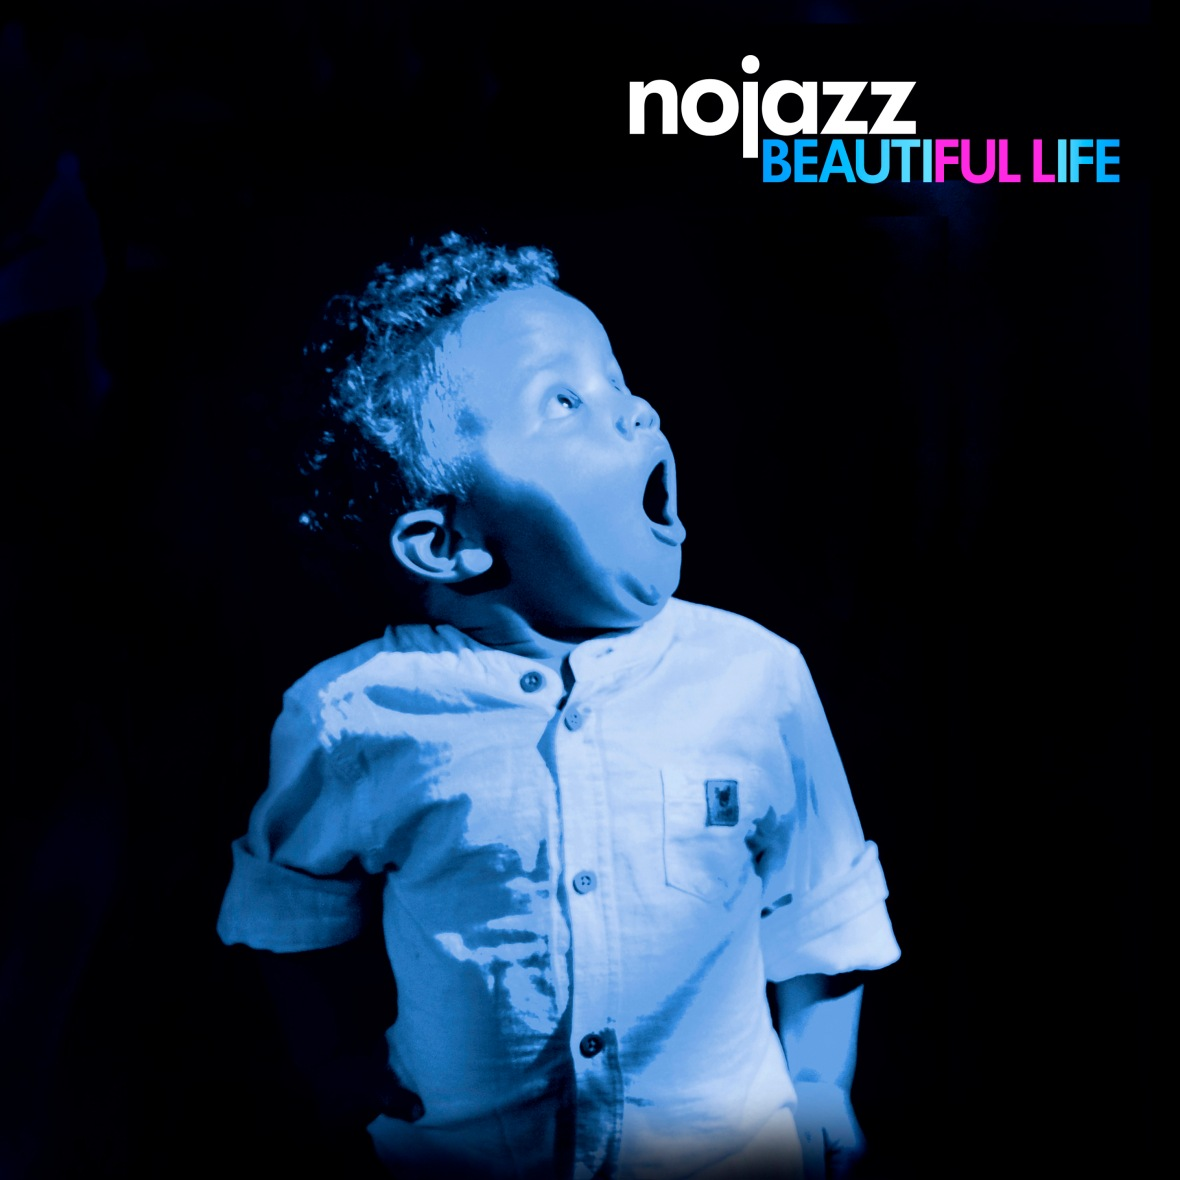 NOJAZZ- beautiful life